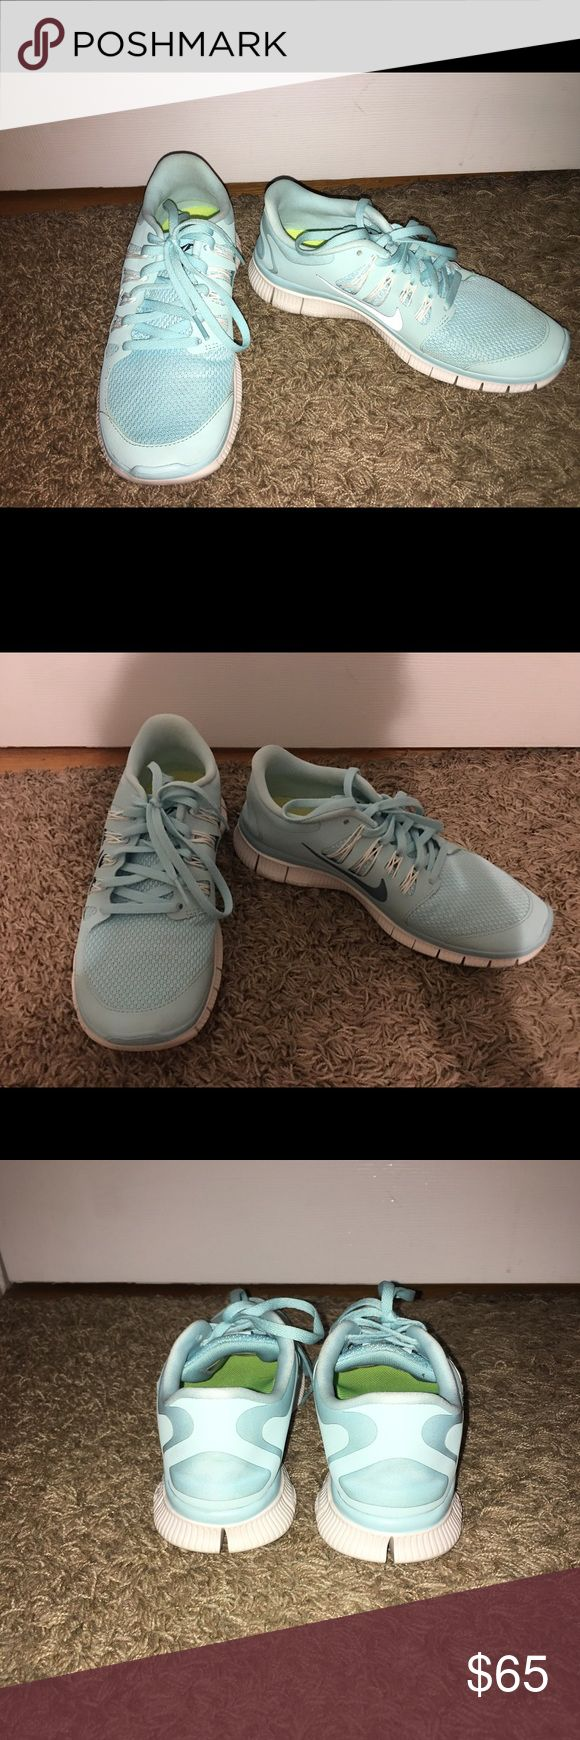 Nike free runs Only worn once very good condition $65 or best offer Nike Shoes Athletic Shoes